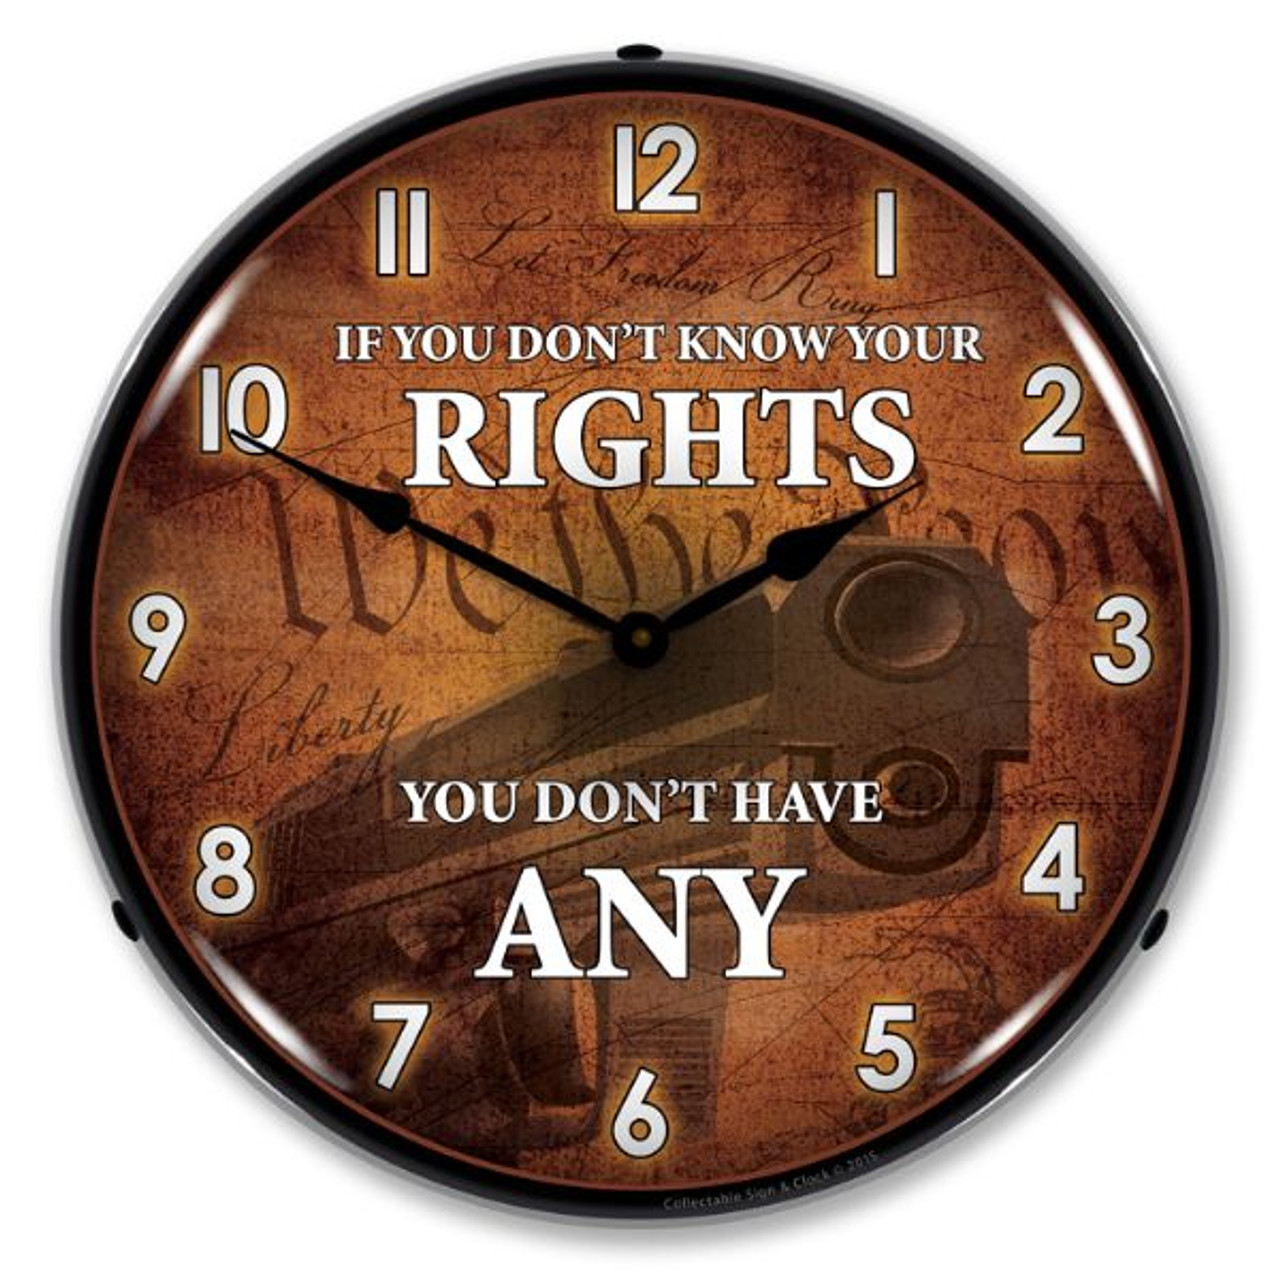 Know Your Rights Lighted Wall Clock 14 x 14 Inches